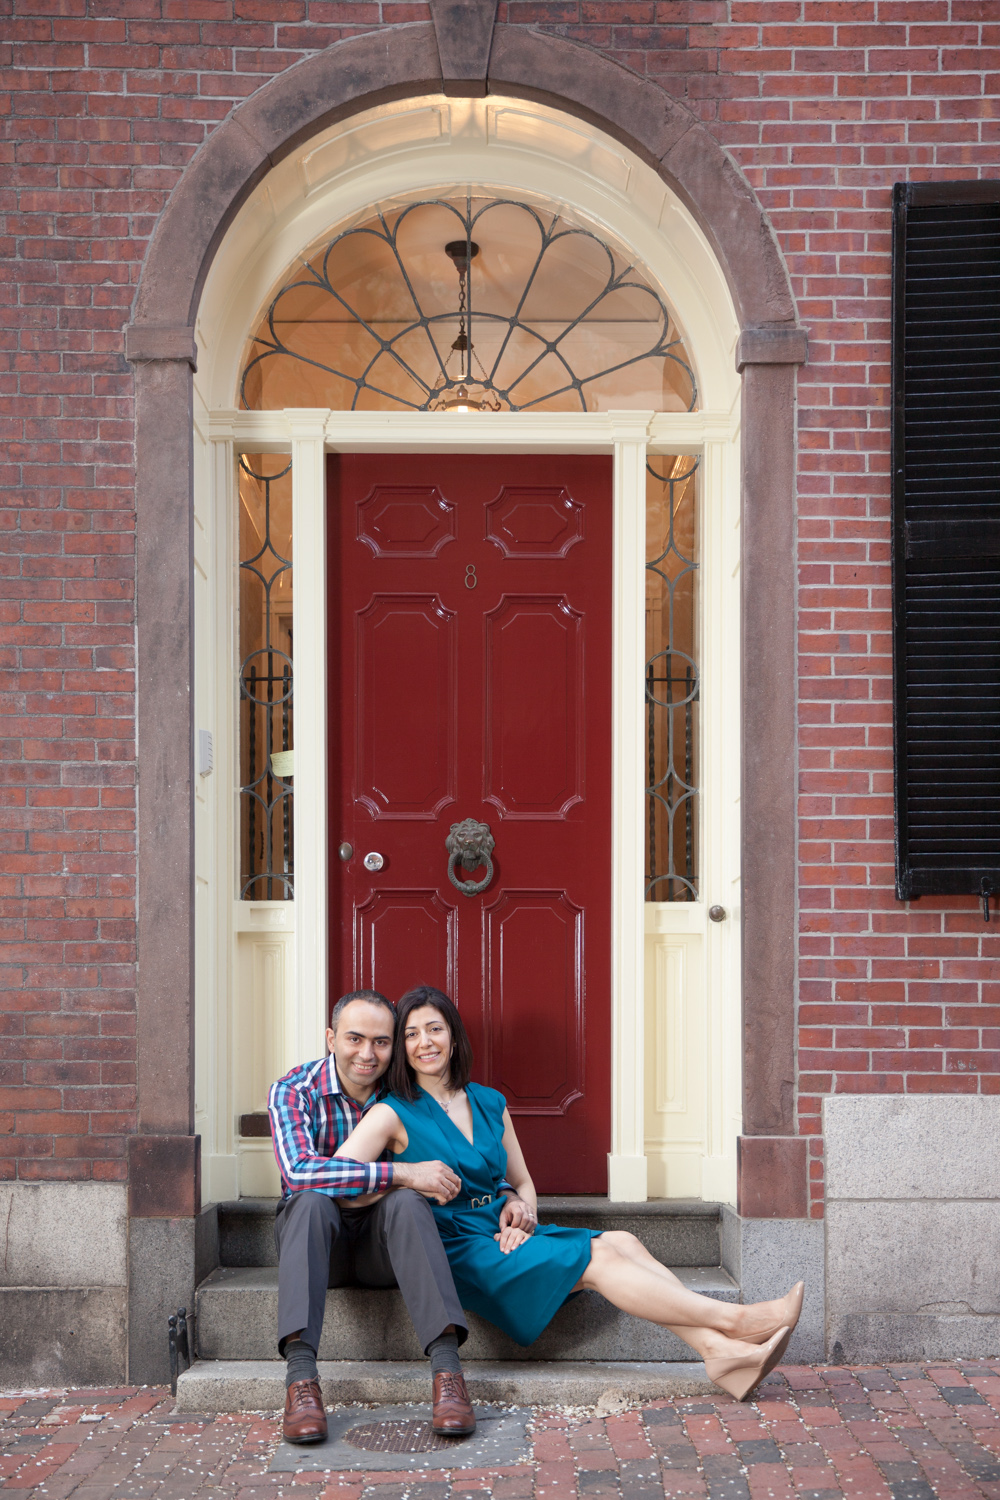 beacon-hill-boston-photo-shoot-married-couple-red-door-blue-dress.jpg